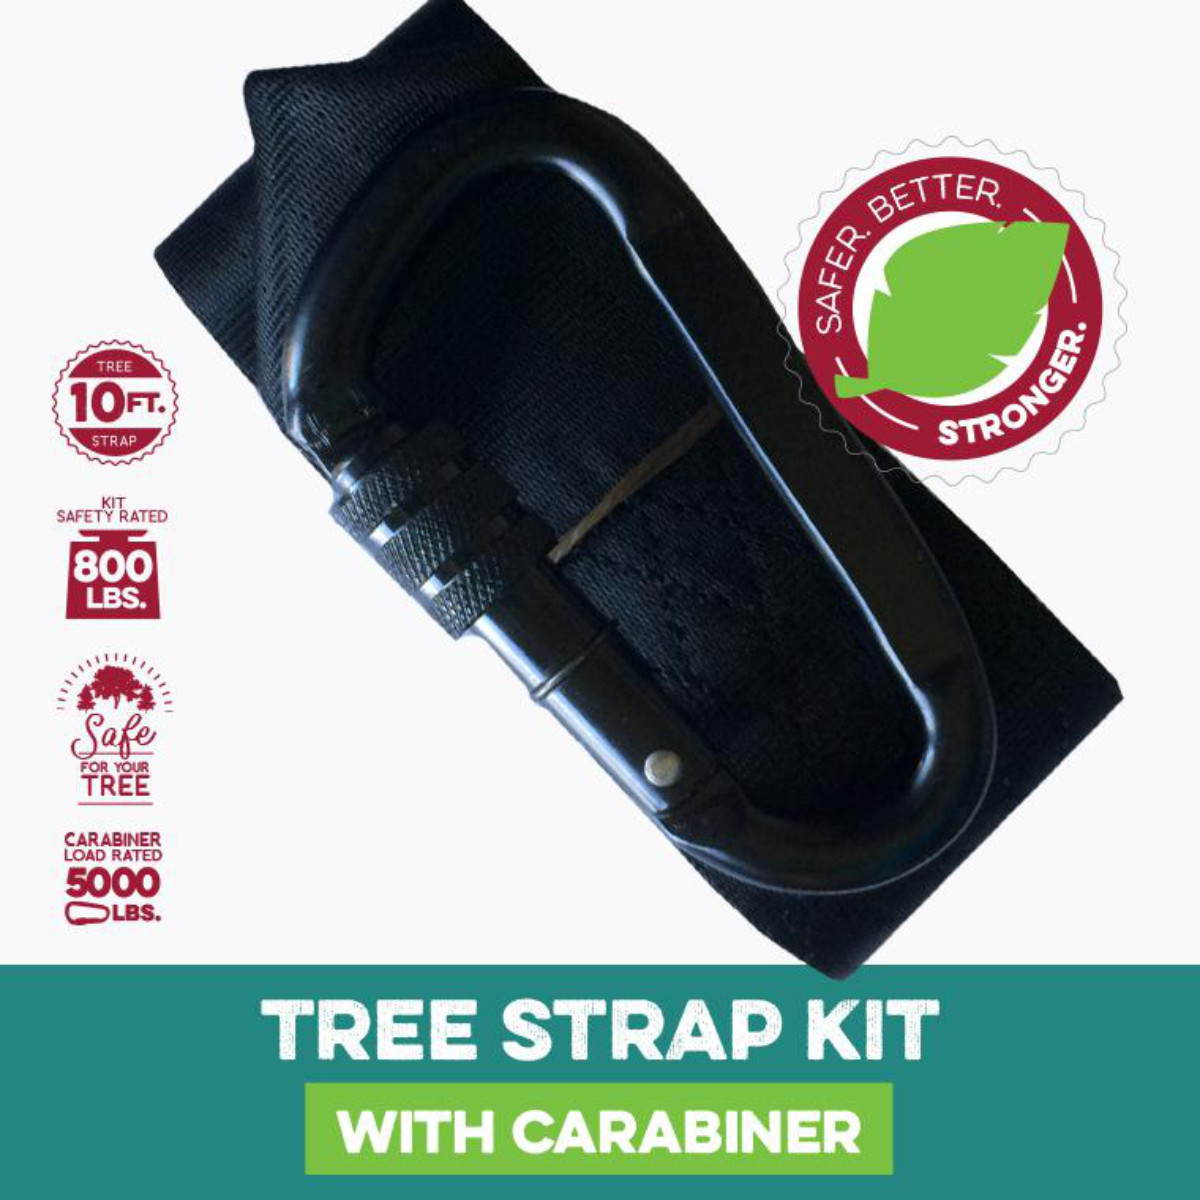 10 ft Tree Swing Strap with Carabiner (MM00149)